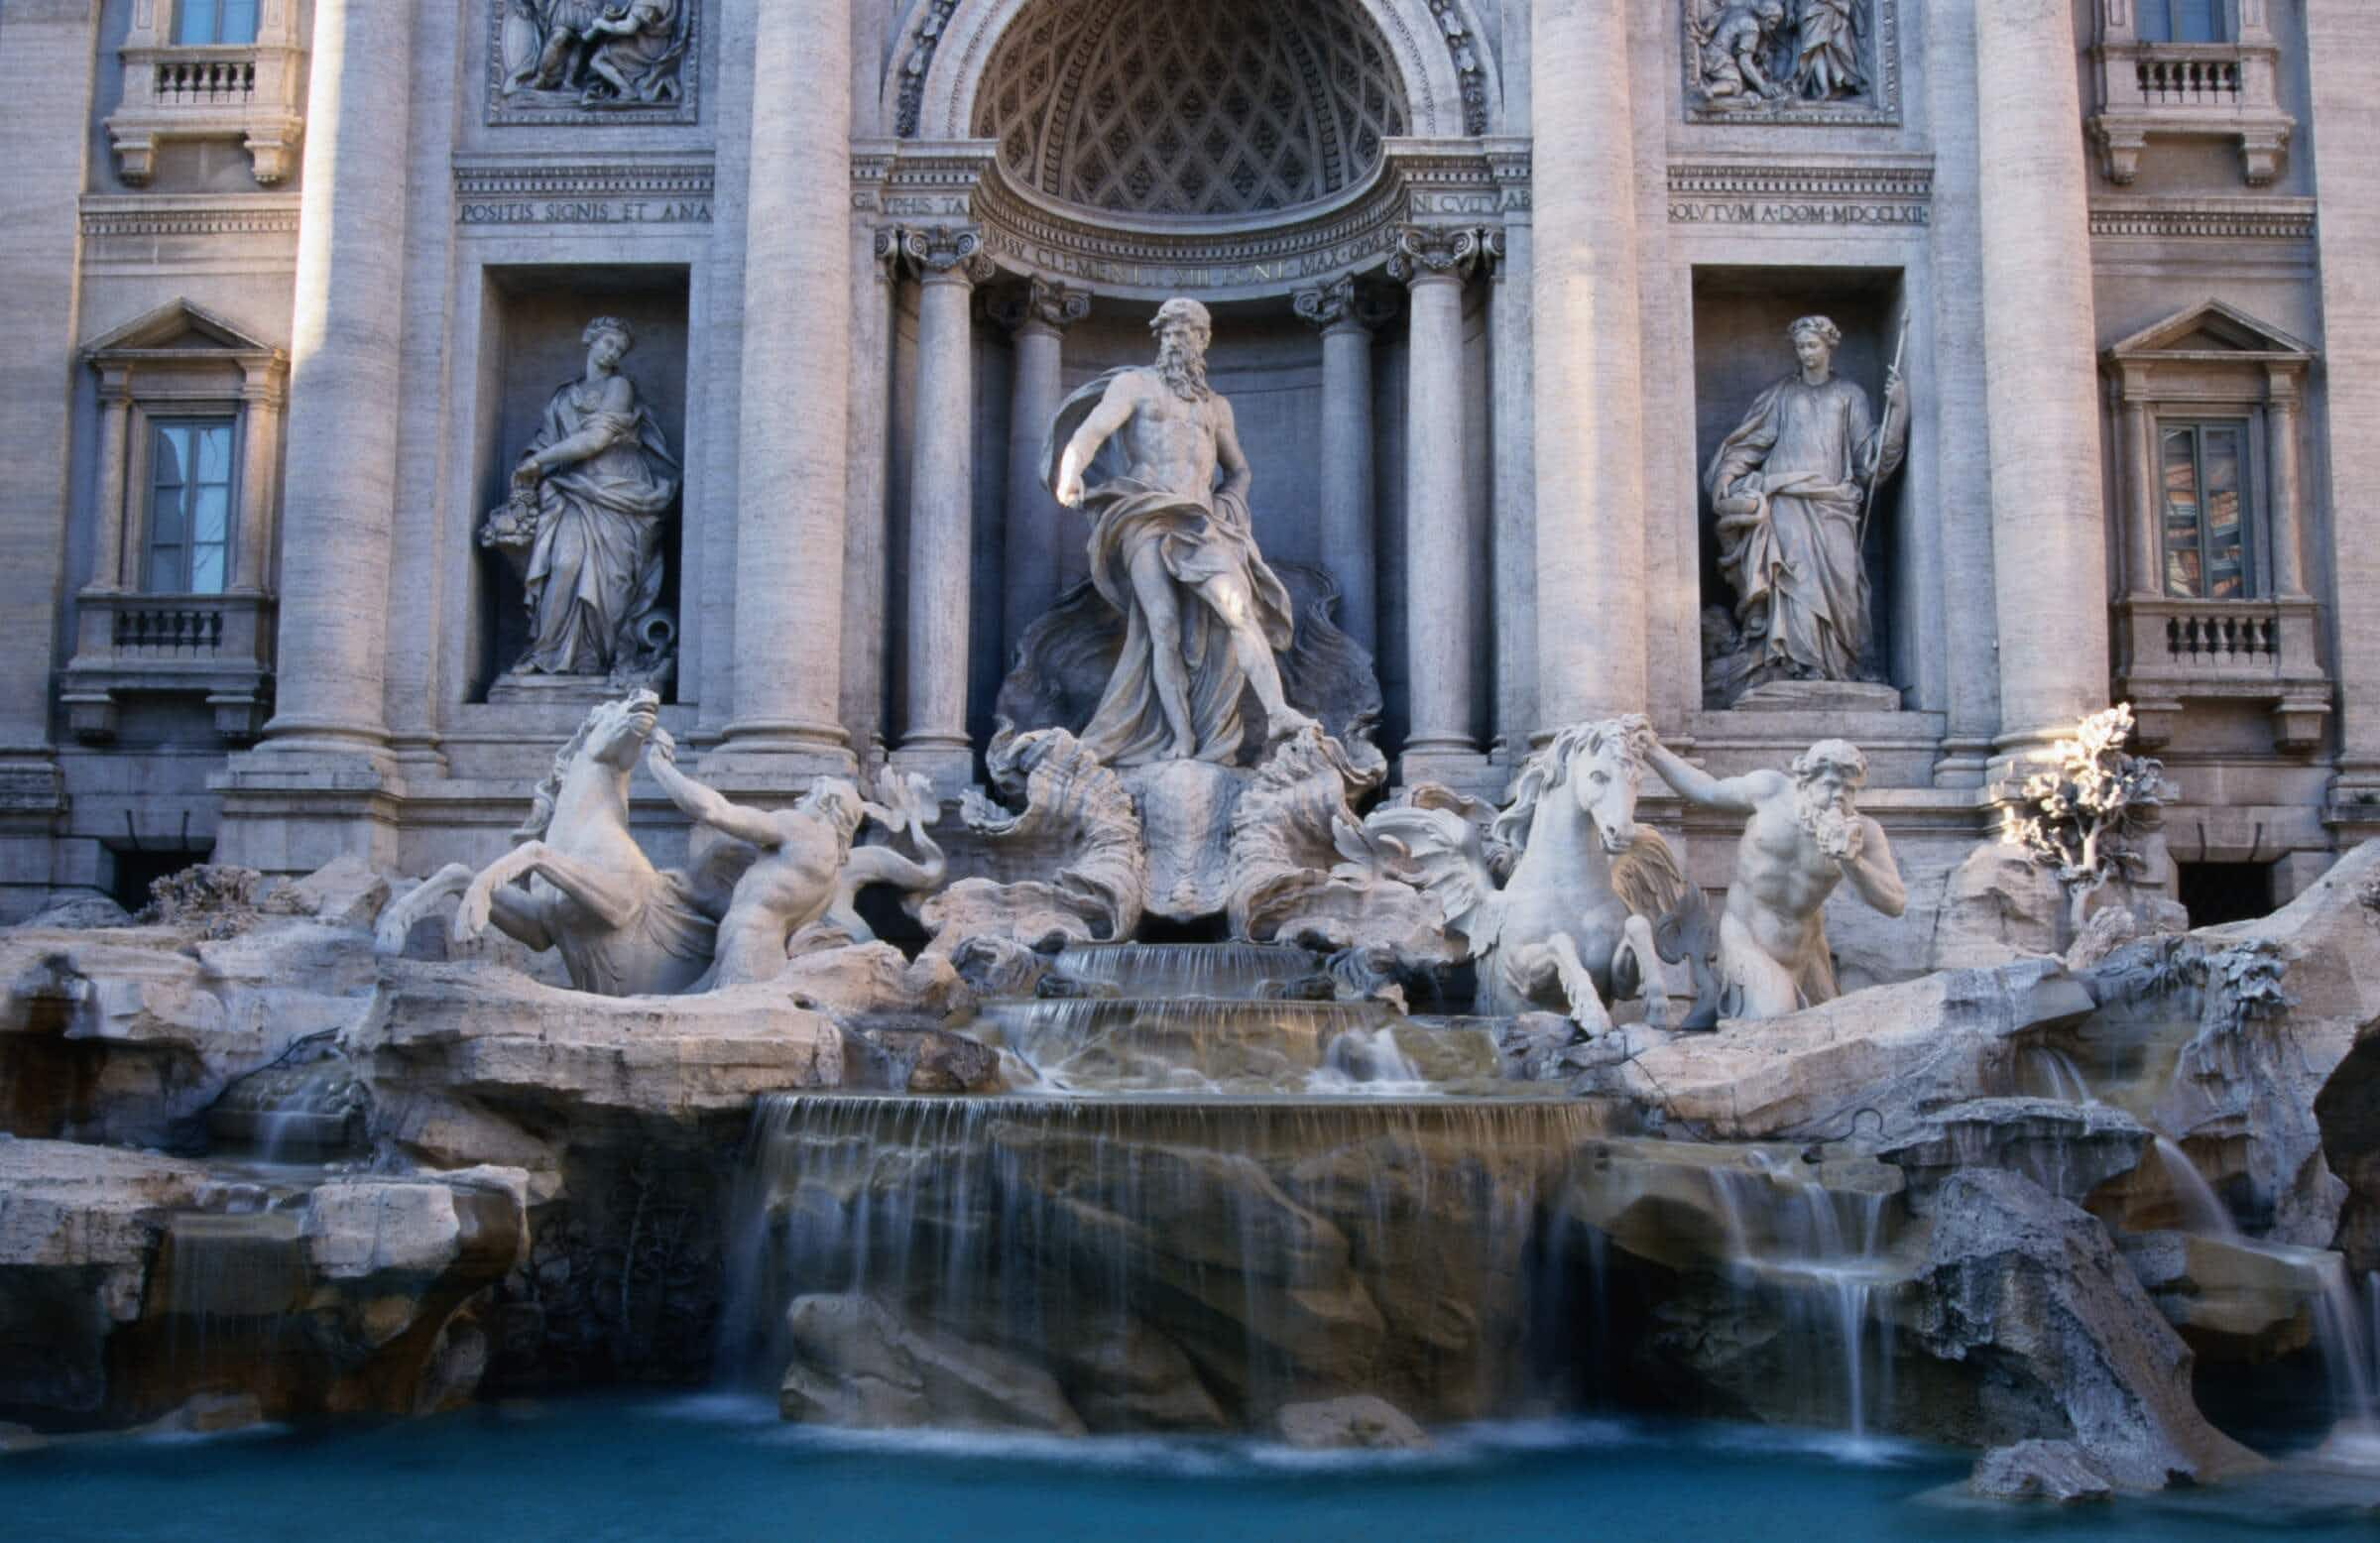 Money from the Trevi fountain is no longer going to charity